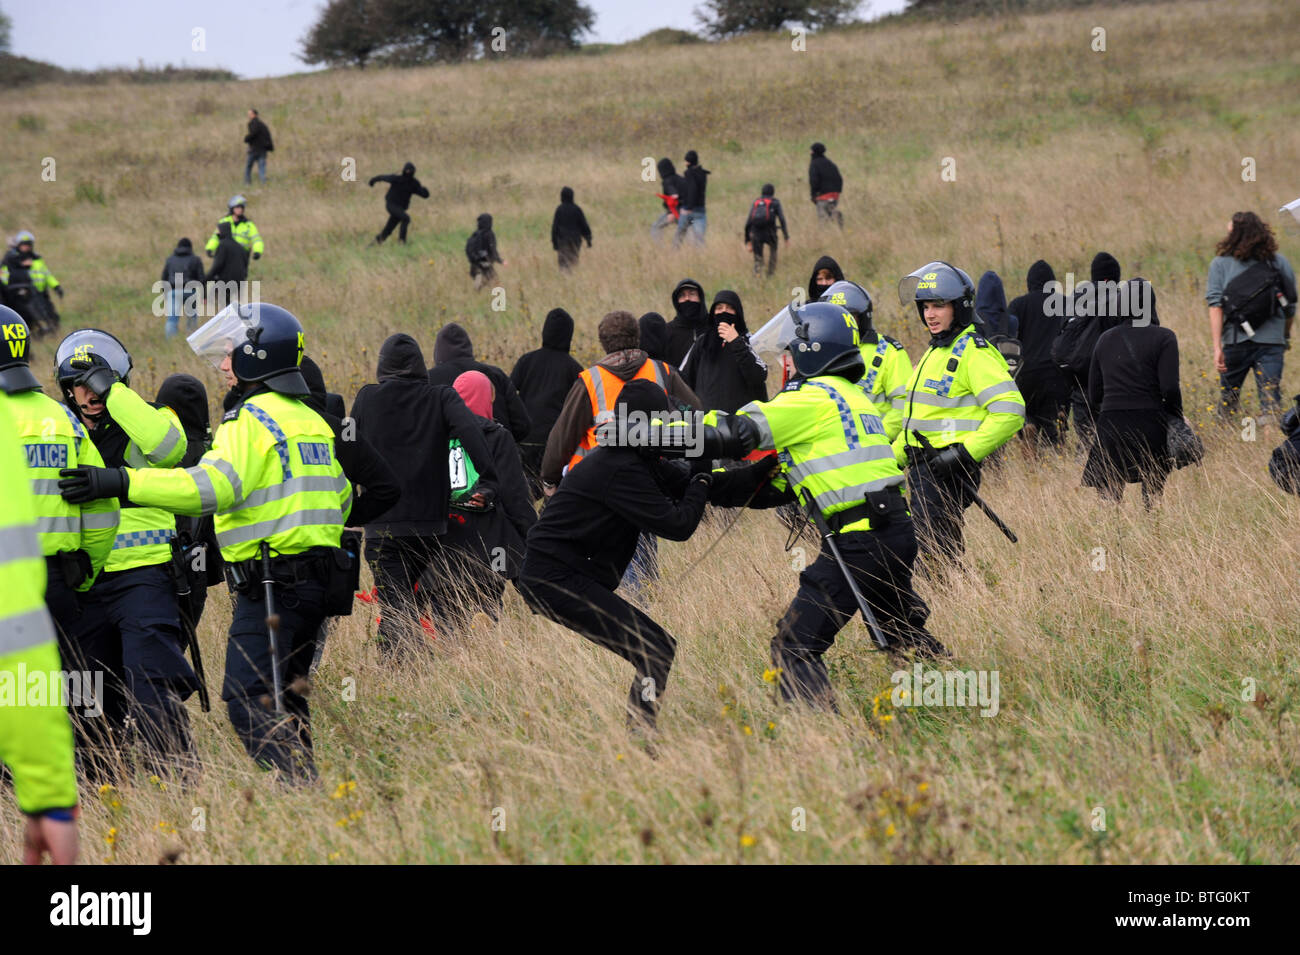 Police officers in riot gear clash with protesters during a recent Smash EDO march held in Brighton - Stock Image